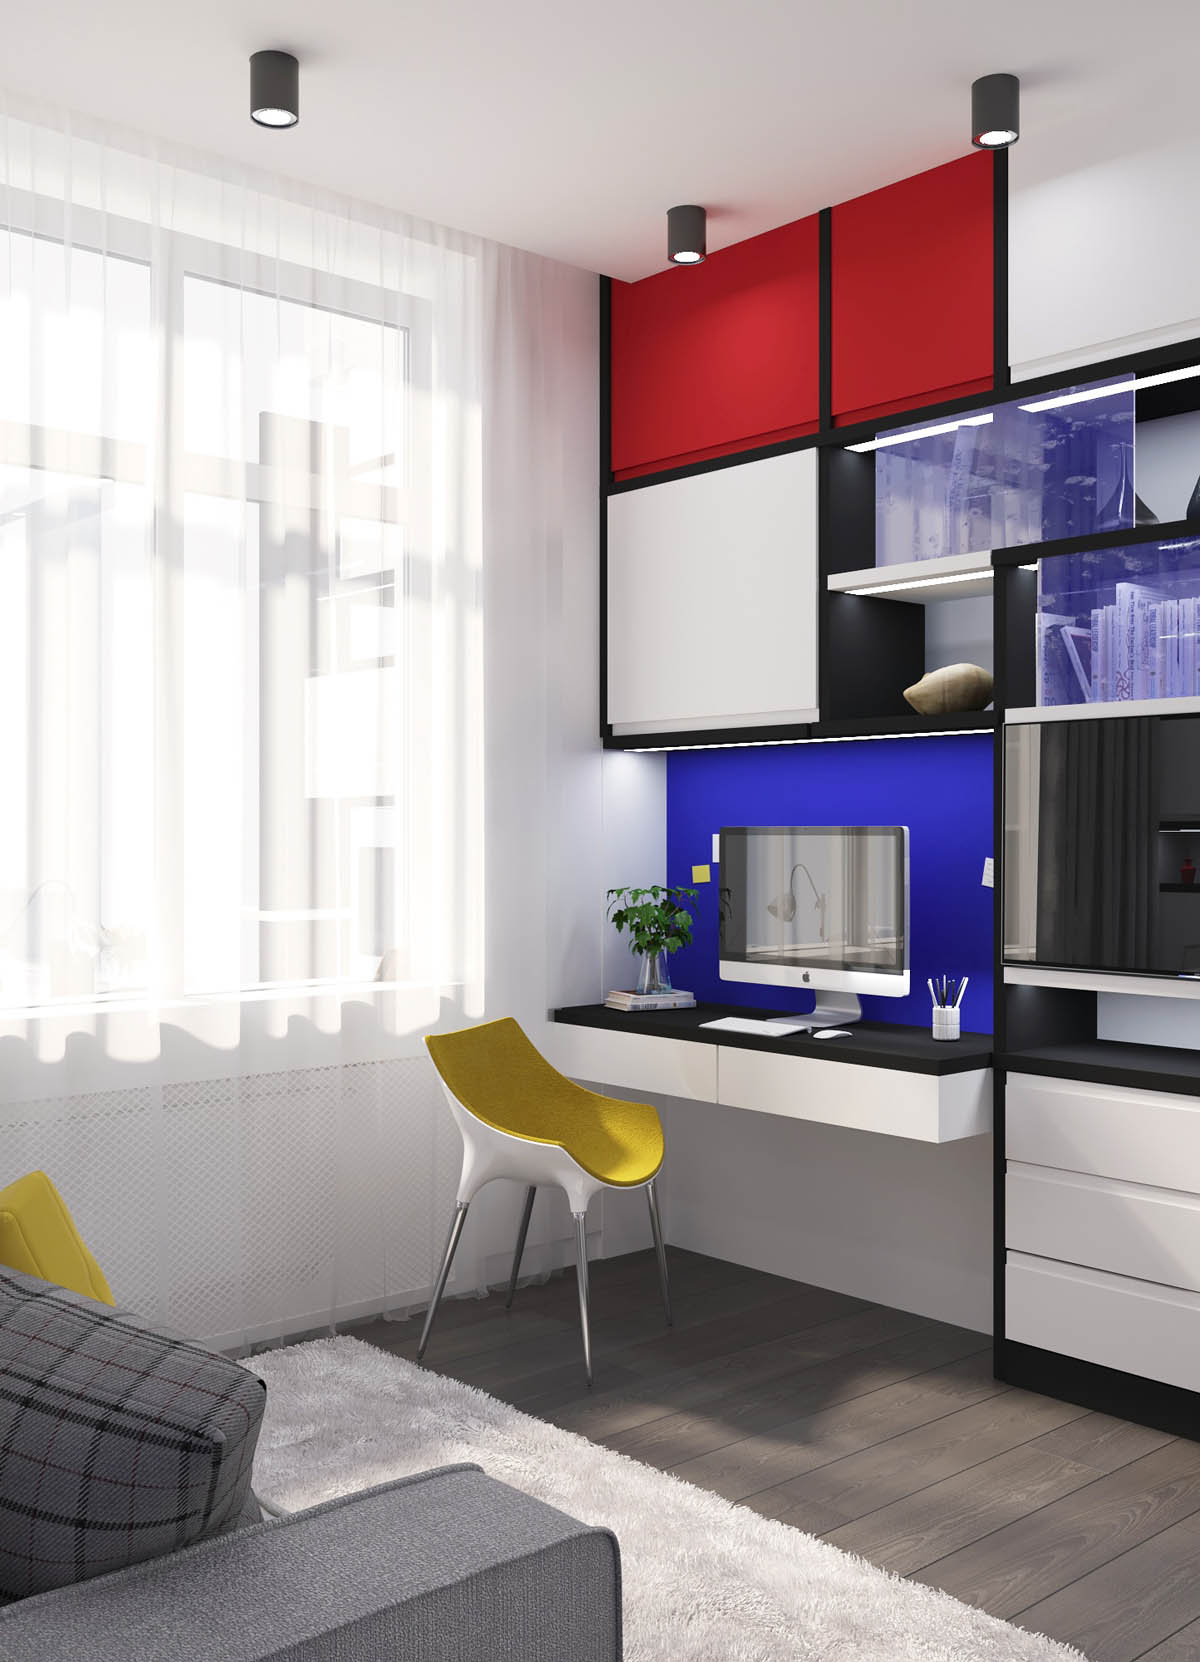 Piet Mondrian Inspired Interior Design To Give Your Home The De Stijl Flair images 9